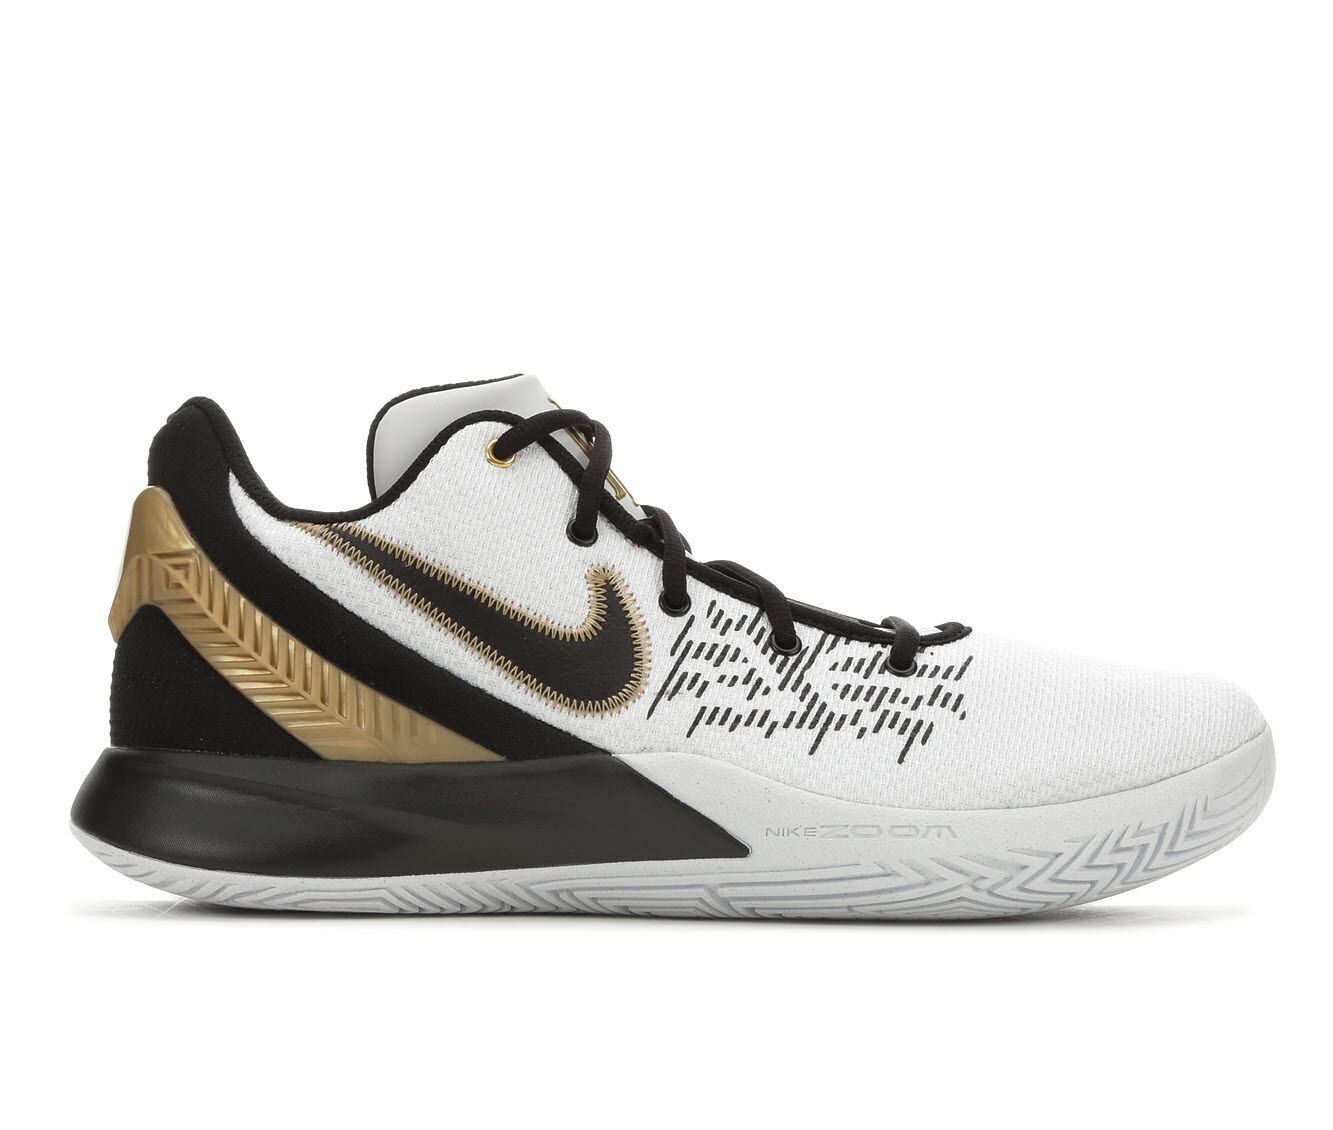 Men's Nike Kyrie Flytrap II Basketball Shoes Wht/Blk/Gld 170